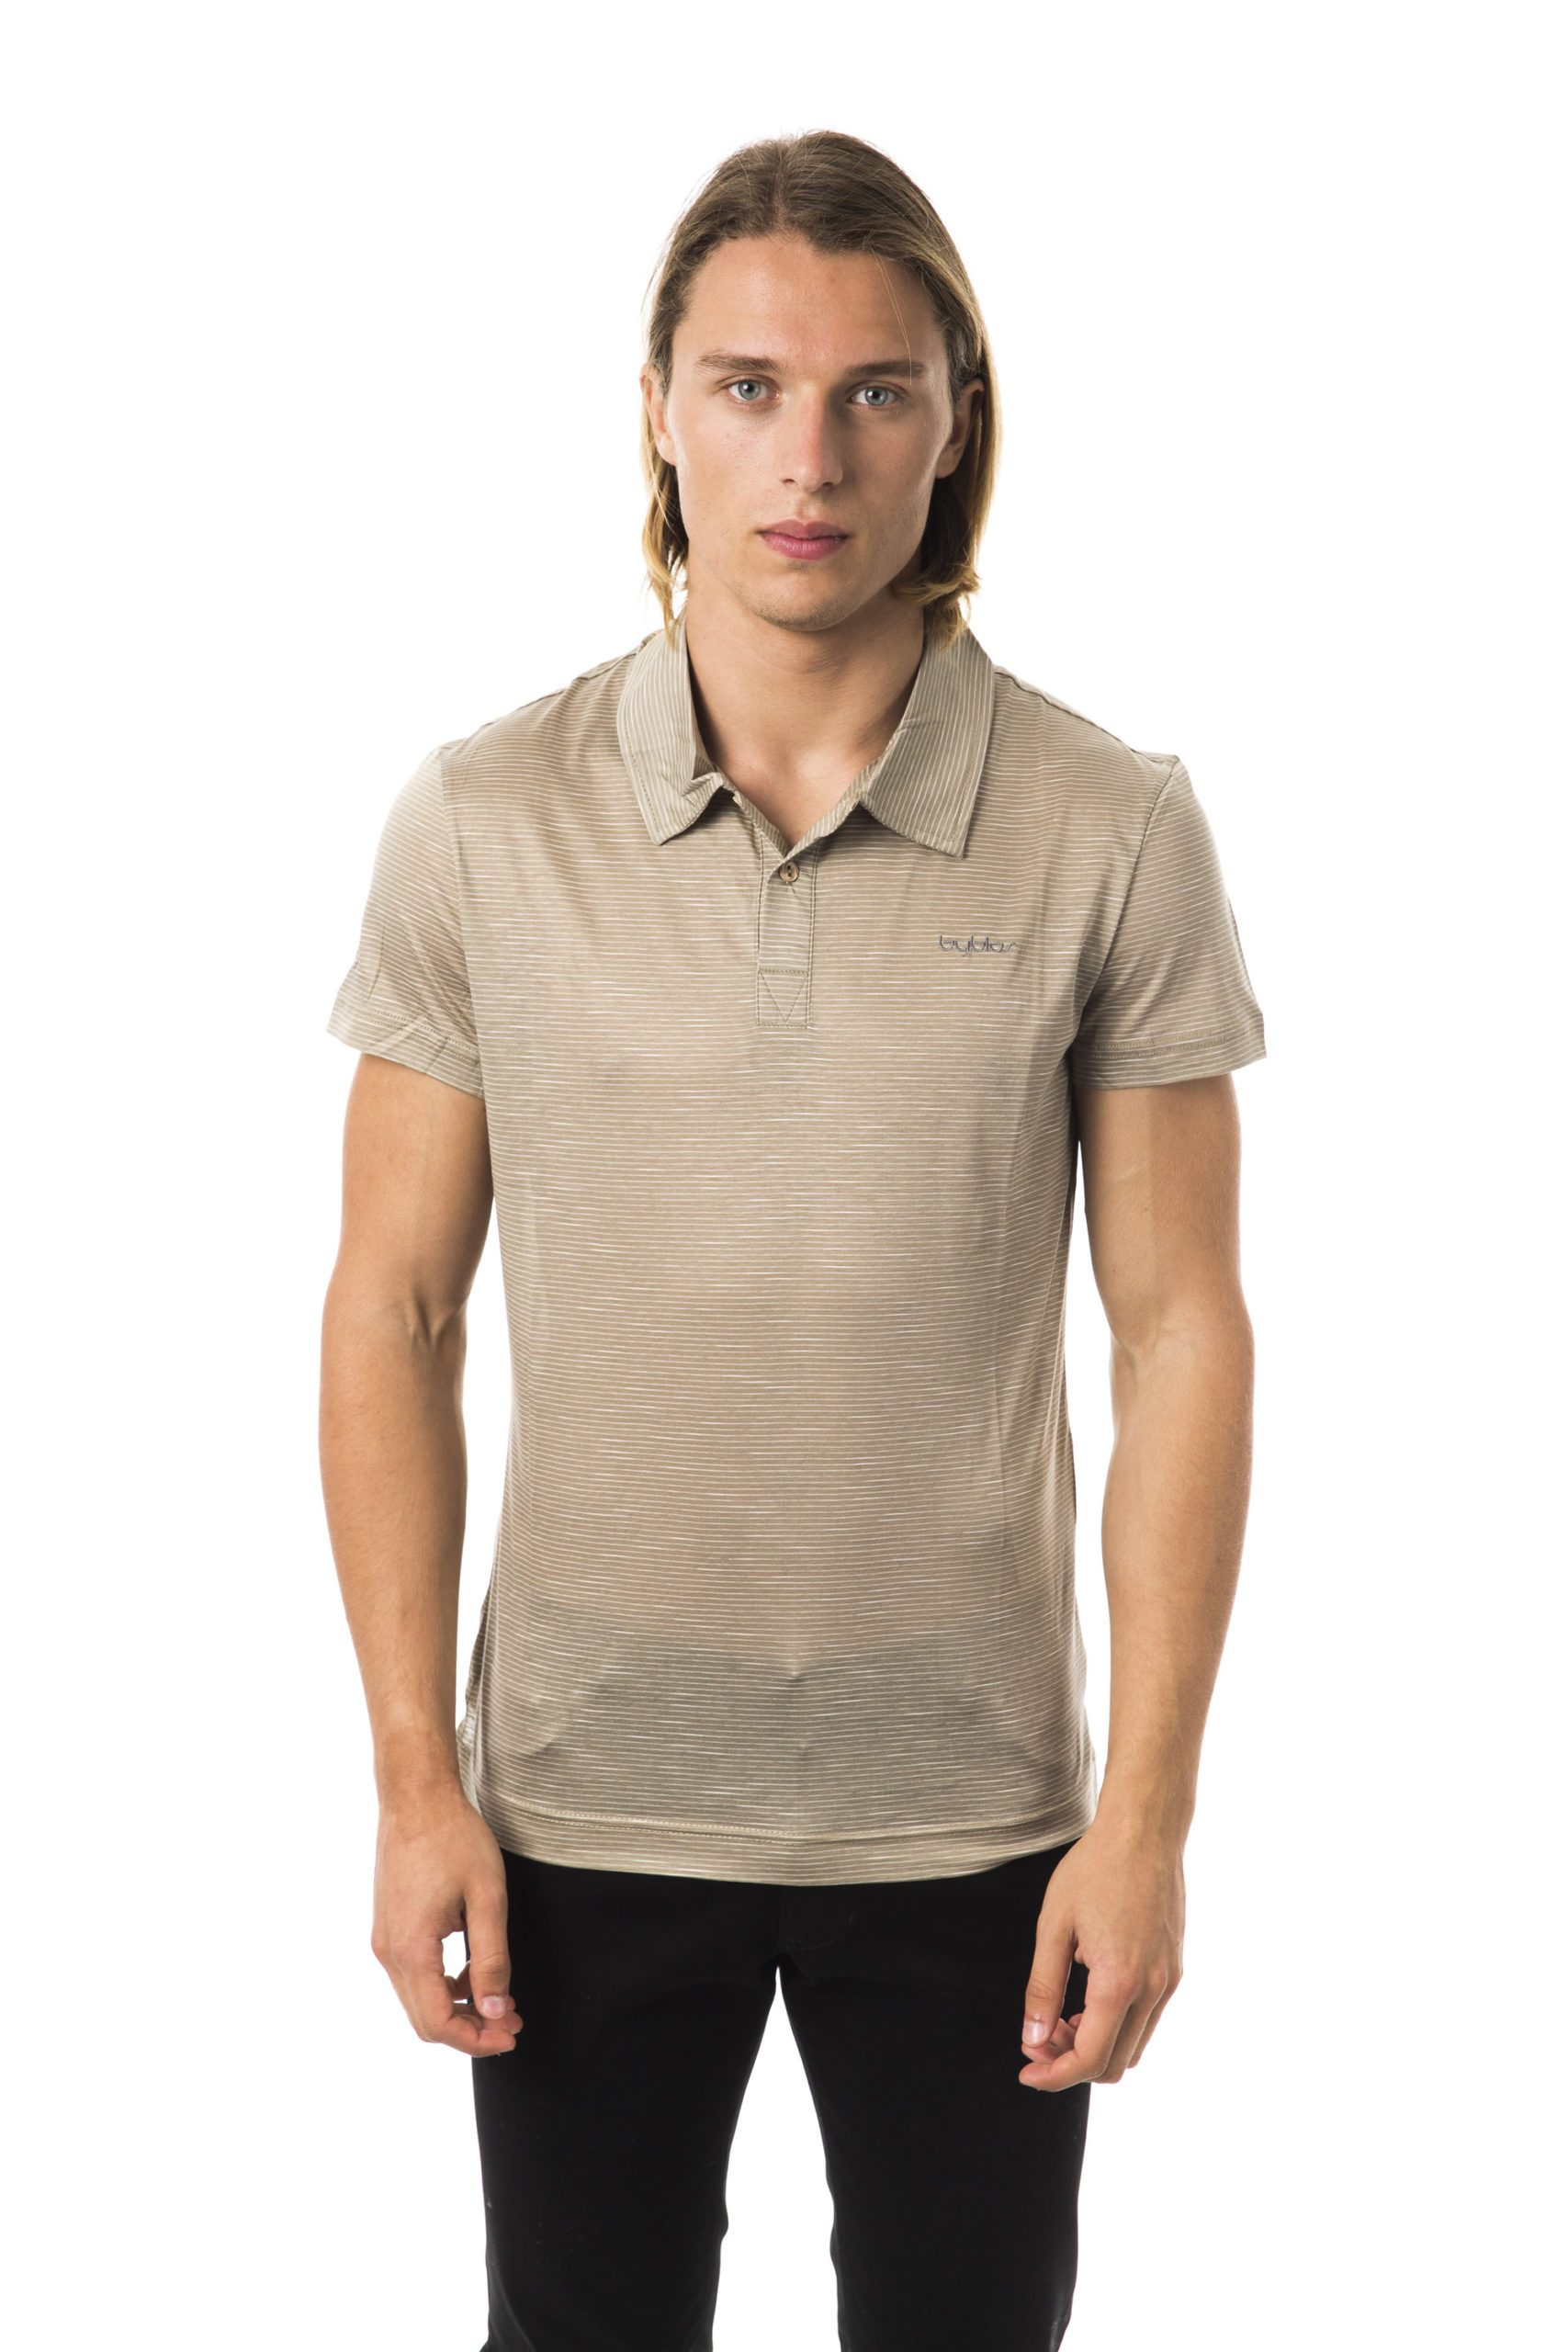 Byblos Men's Polo Shirt Gray BY997150 - XL